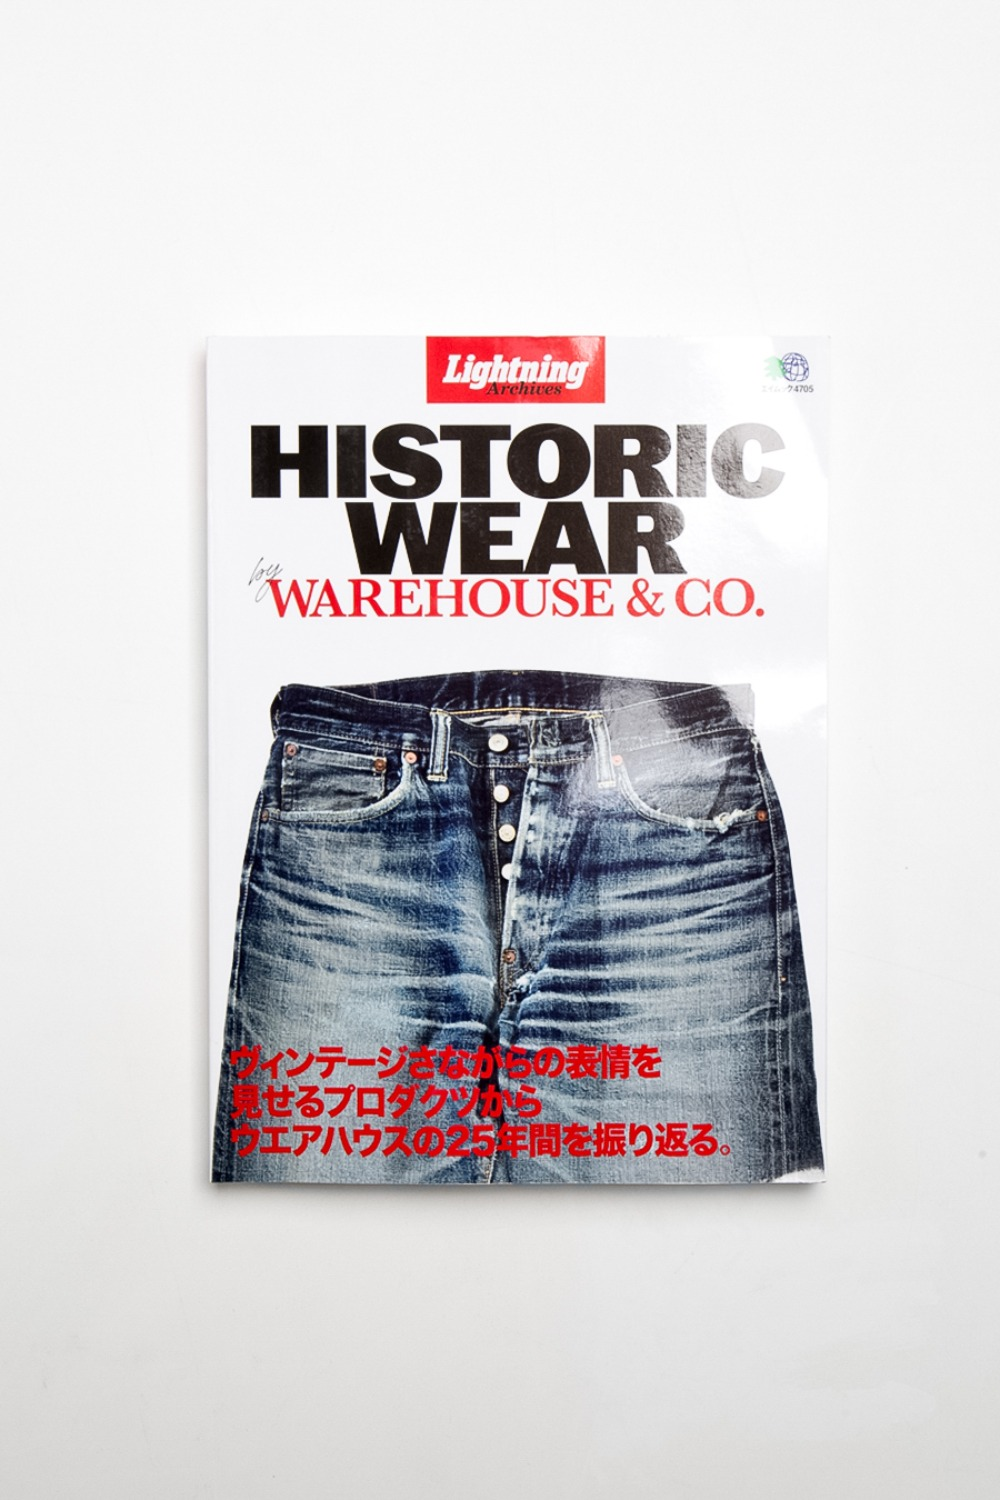 WAREHOUSE 25TH ANNIVERSARY LIGHTNING EXHIBIT BOOK [ARCHIVES] HISTORIC WEAR